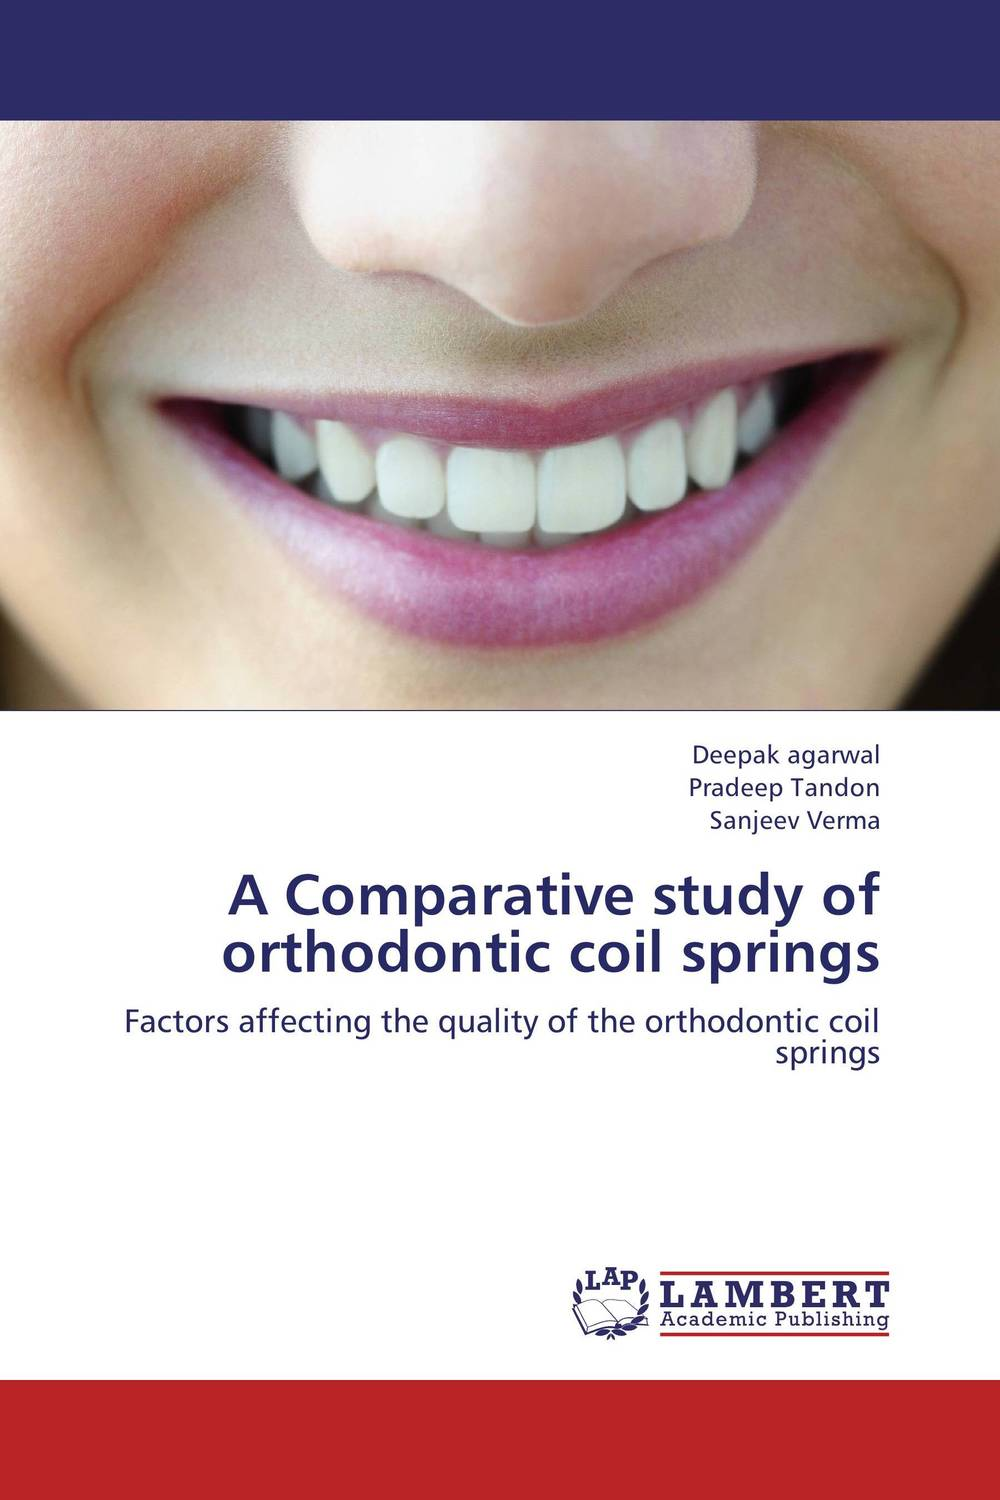 цена на A Comparative study of orthodontic coil springs